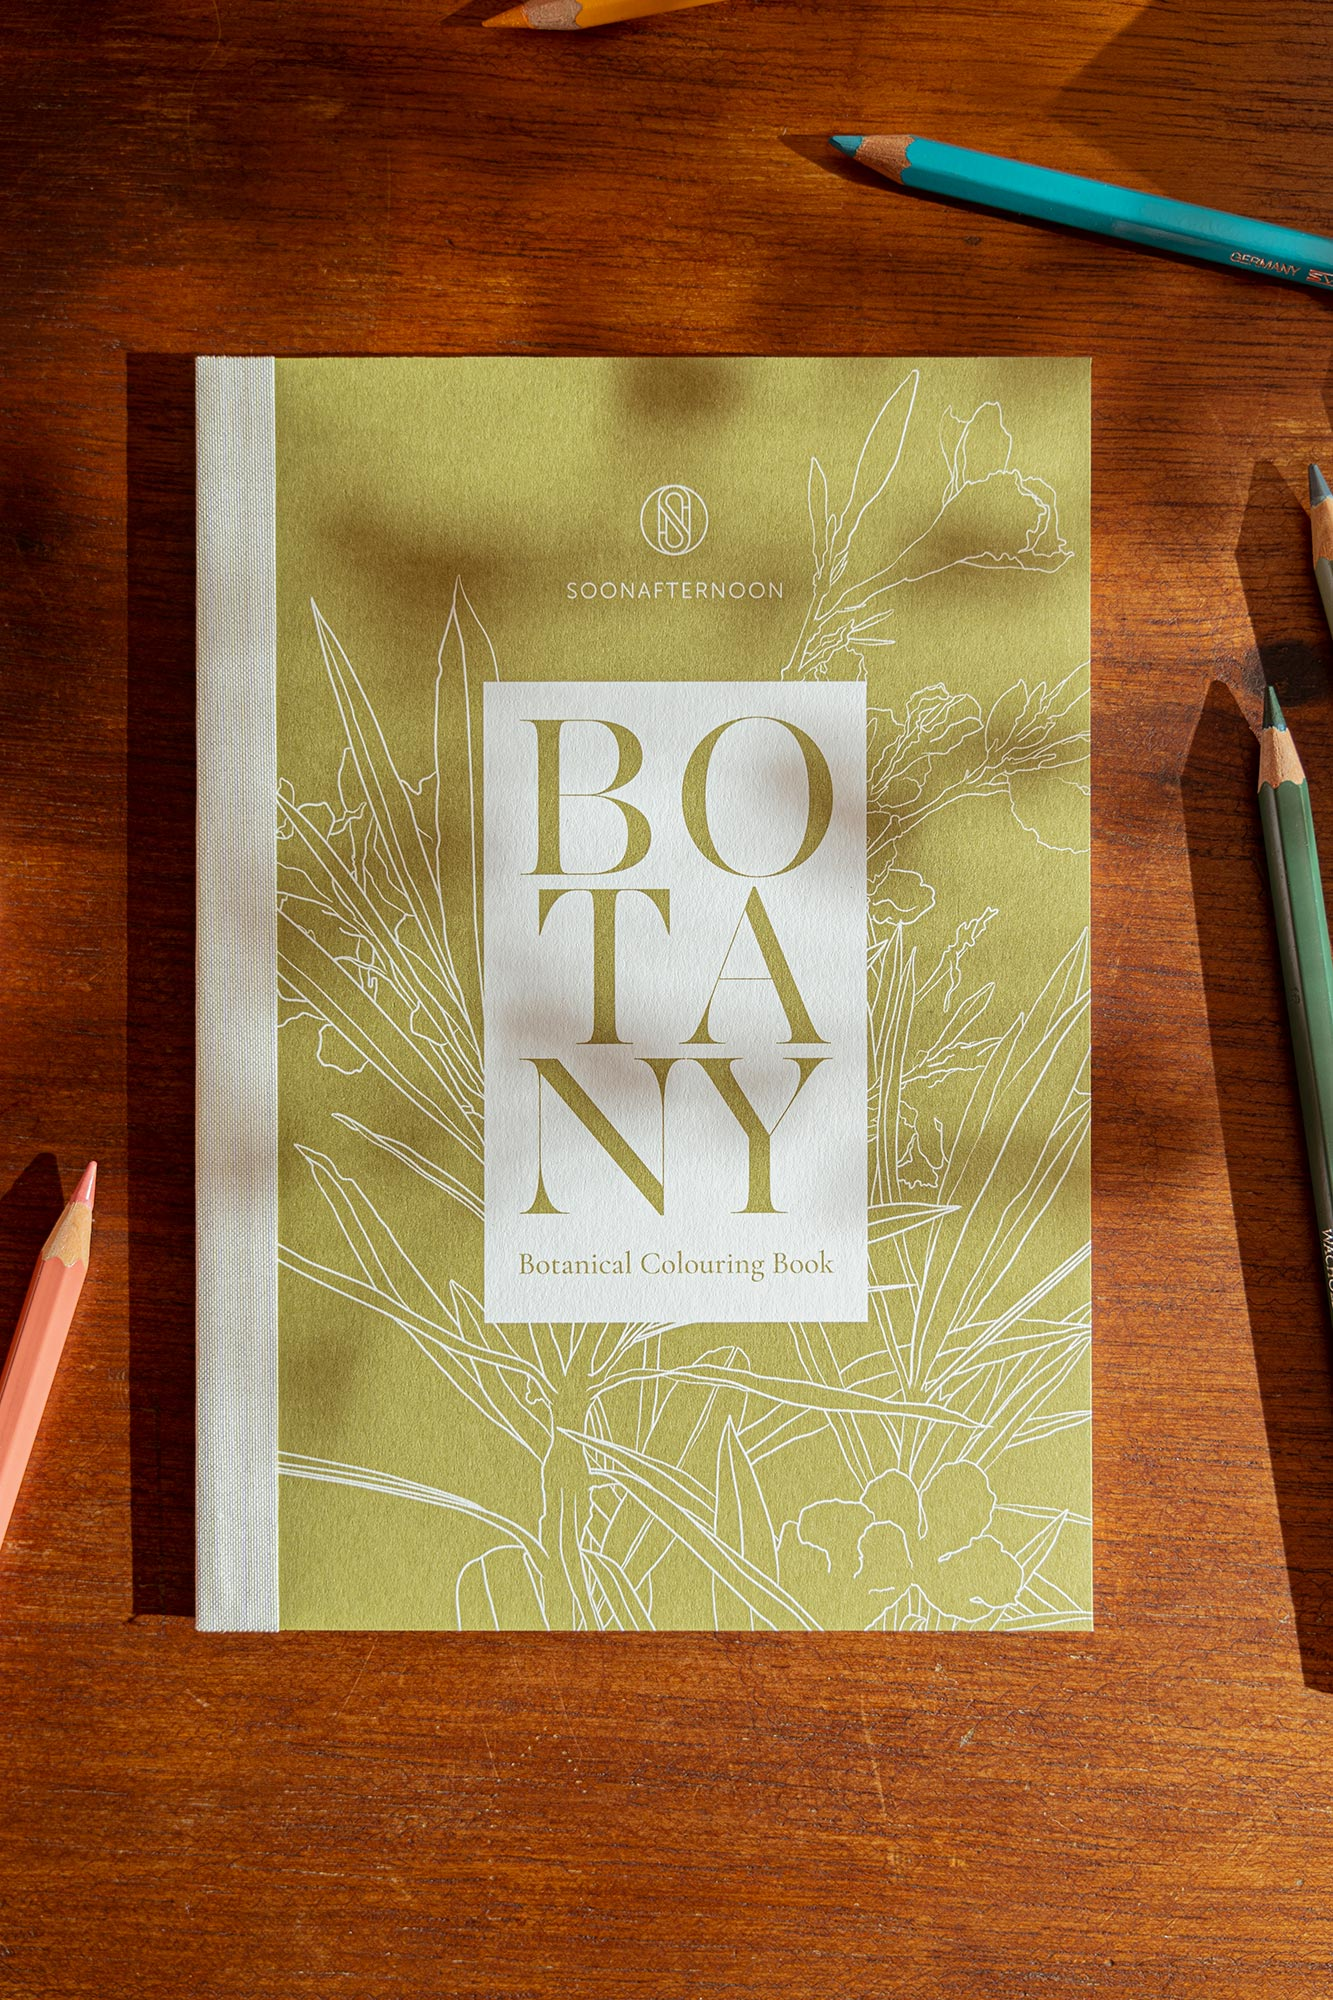 Botanical Colouring Book for grown-ups